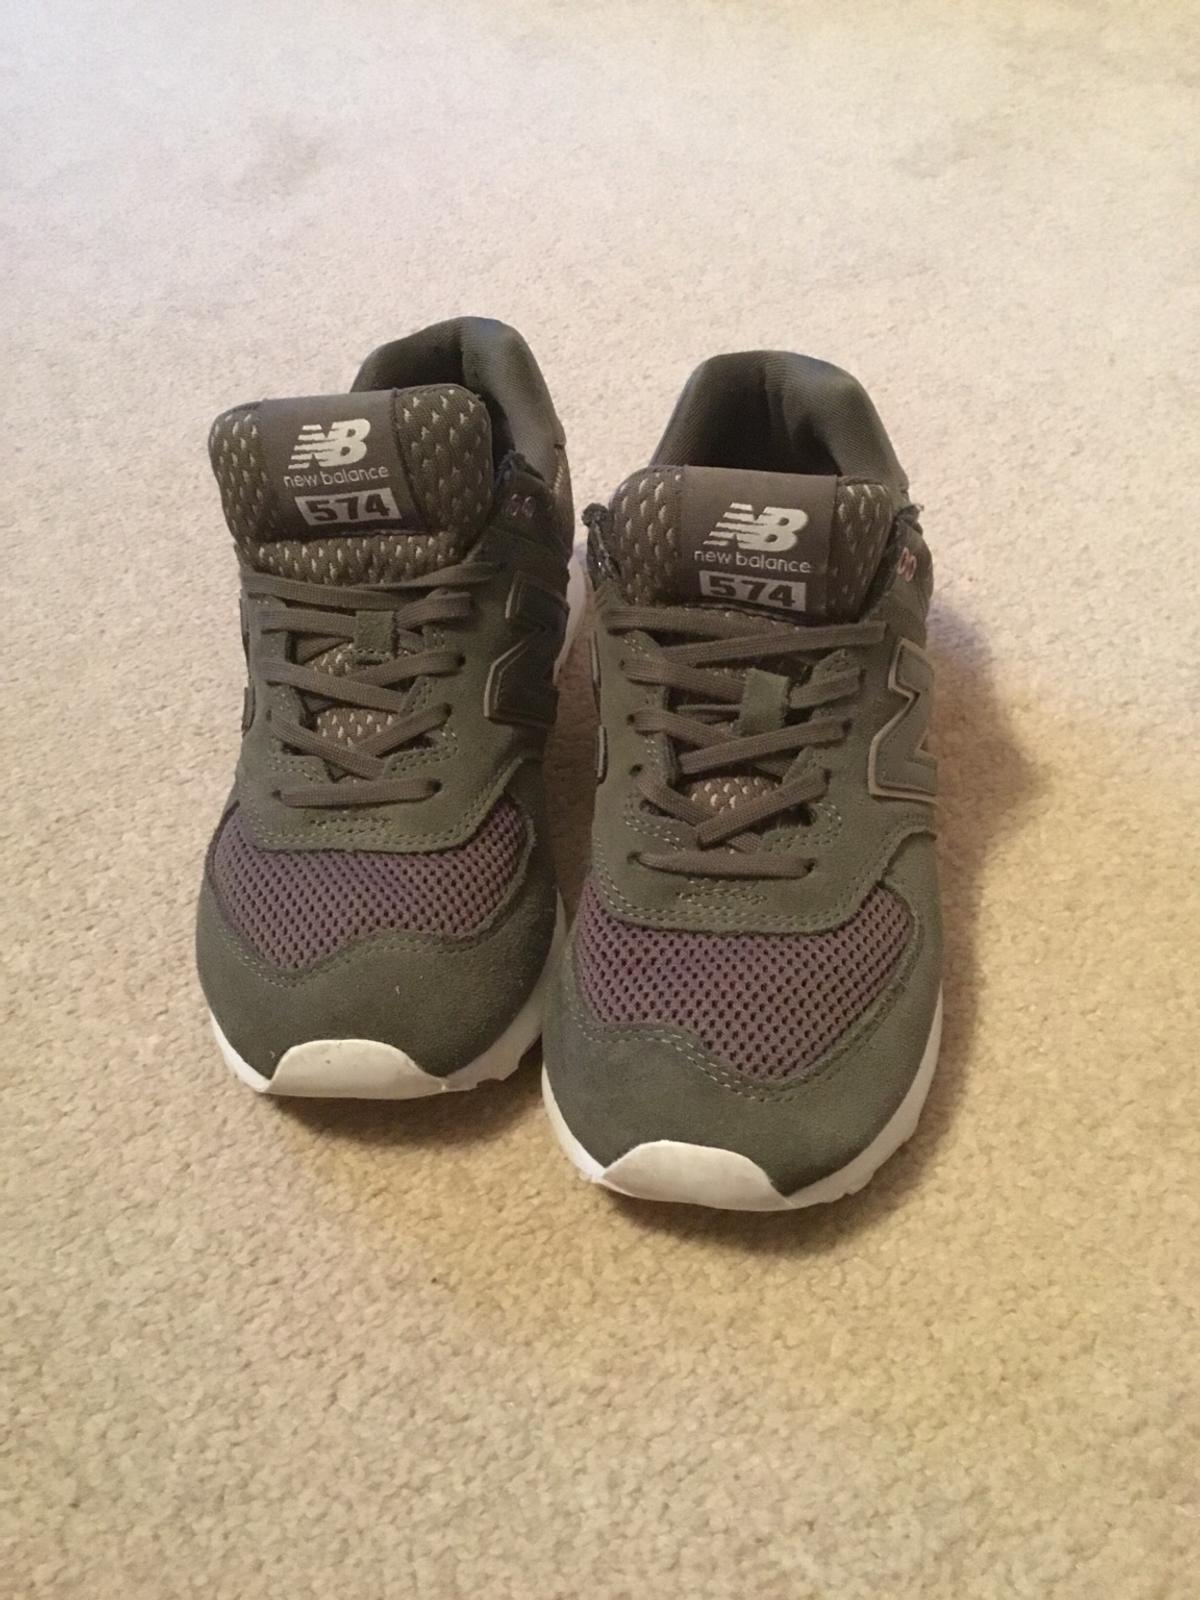 Trainers have not been used much so very clean and little sign of wear. Soft and comfy. UK size 4 but definitely come up smaller. (Too tight for me)